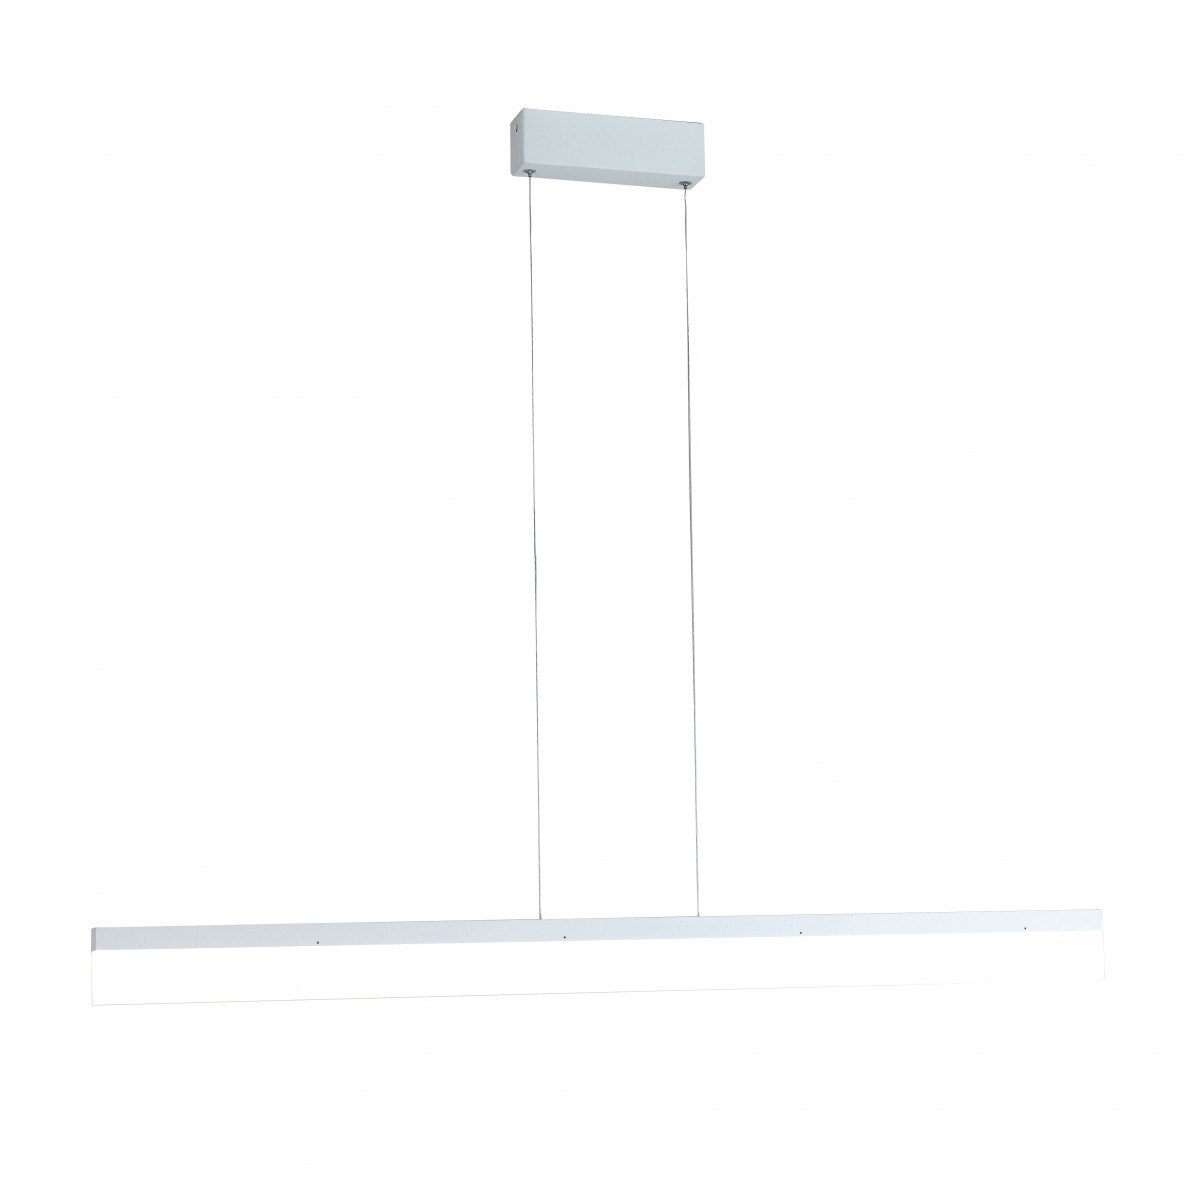 LED-SATURN-S120 - Lustre à Suspension Rectangulaire Blanc Aluminium Acrylique Led 36 watts Lumière Naturelle